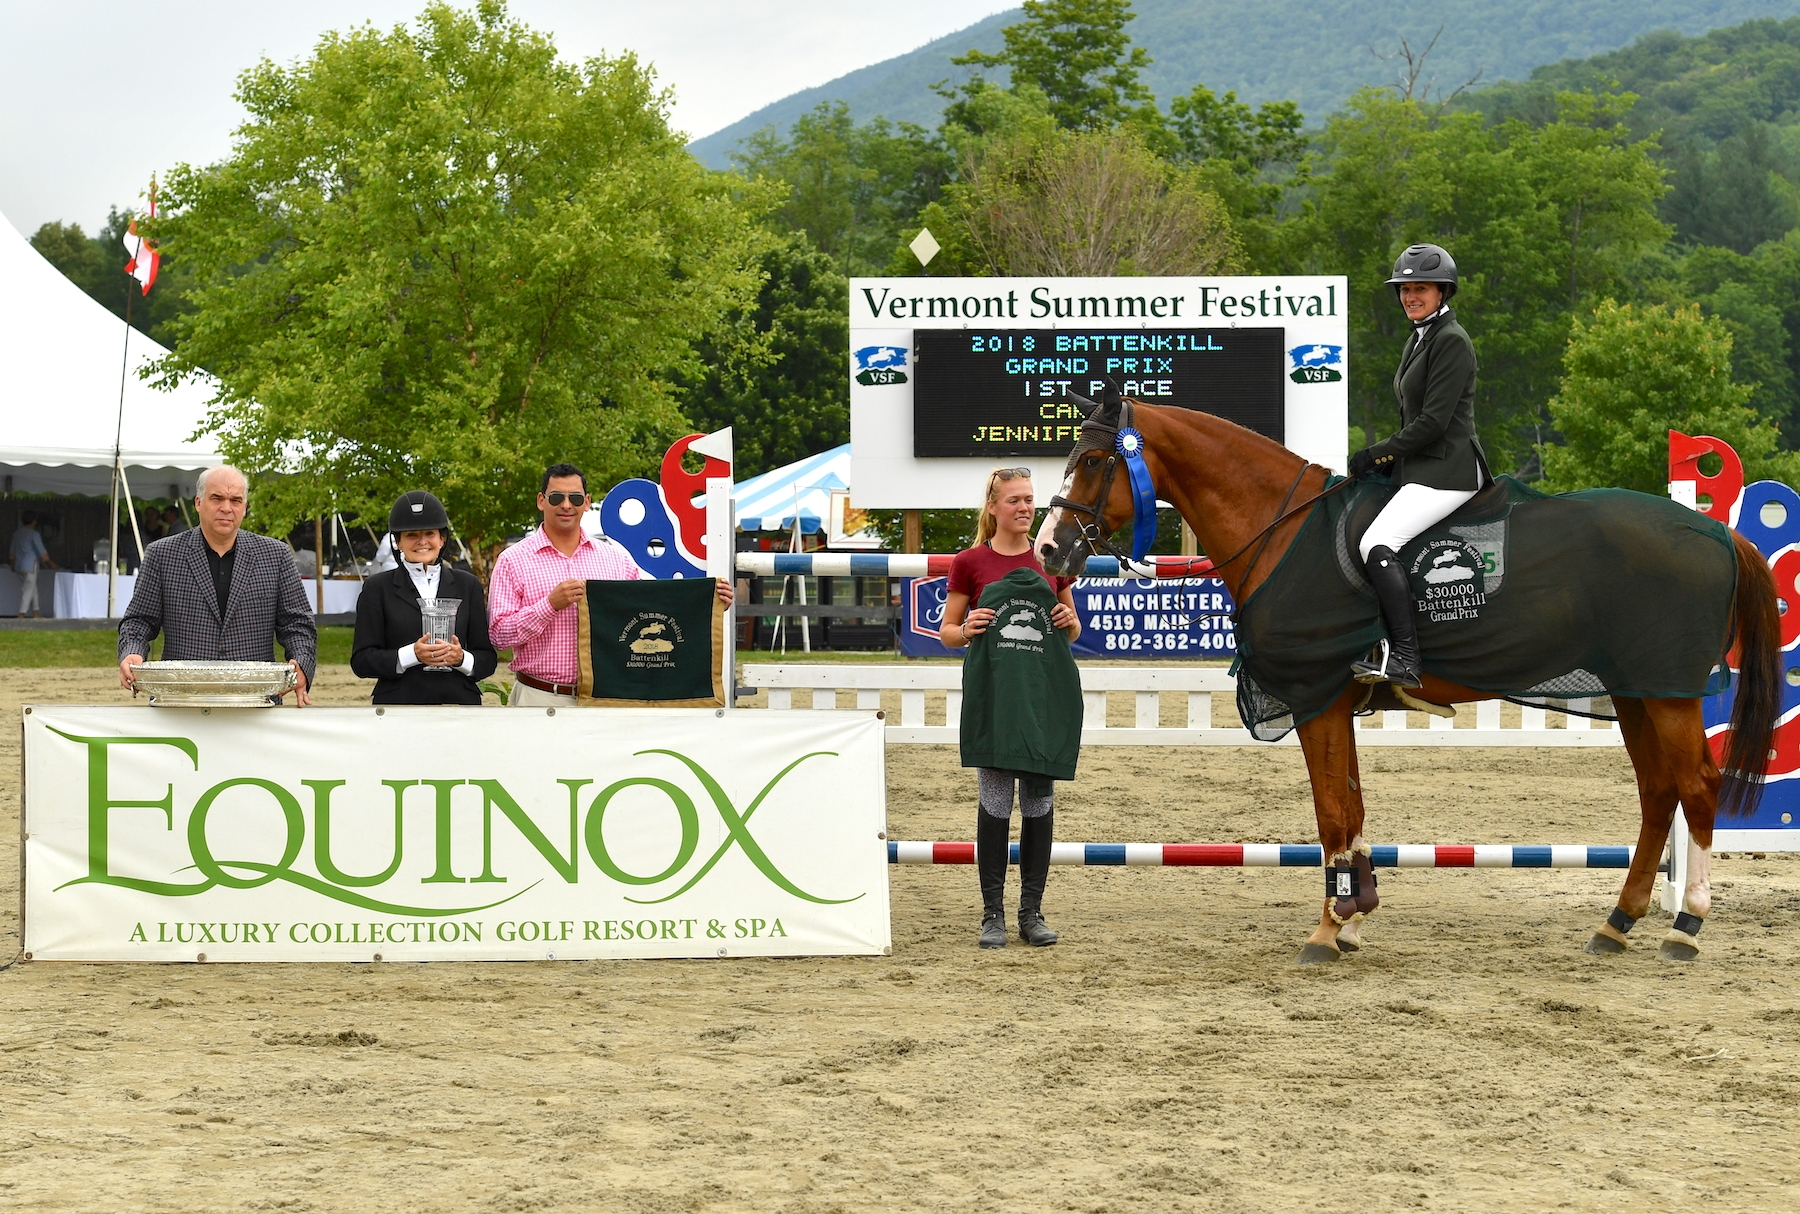 Jennifer Kocher and Carlos were presented as the winners of the $30,000 Battenkill Grand Prix, presented by The Equinox Resort, by representatives from The Equinox Resort, including (left to right) General Manager Roger Aberth, Spa Director Susan Wheeler, and Sales Manager Kenny Valenzuela, as well as groom Sara Zeerip at the Vermont Summer Festival on Saturday, July 14, in East Dorset, VT. <br><b>Photo by <a href='http://www.andrewryback.com/' target='_blank'>Andrew Ryback Photography</a></b>